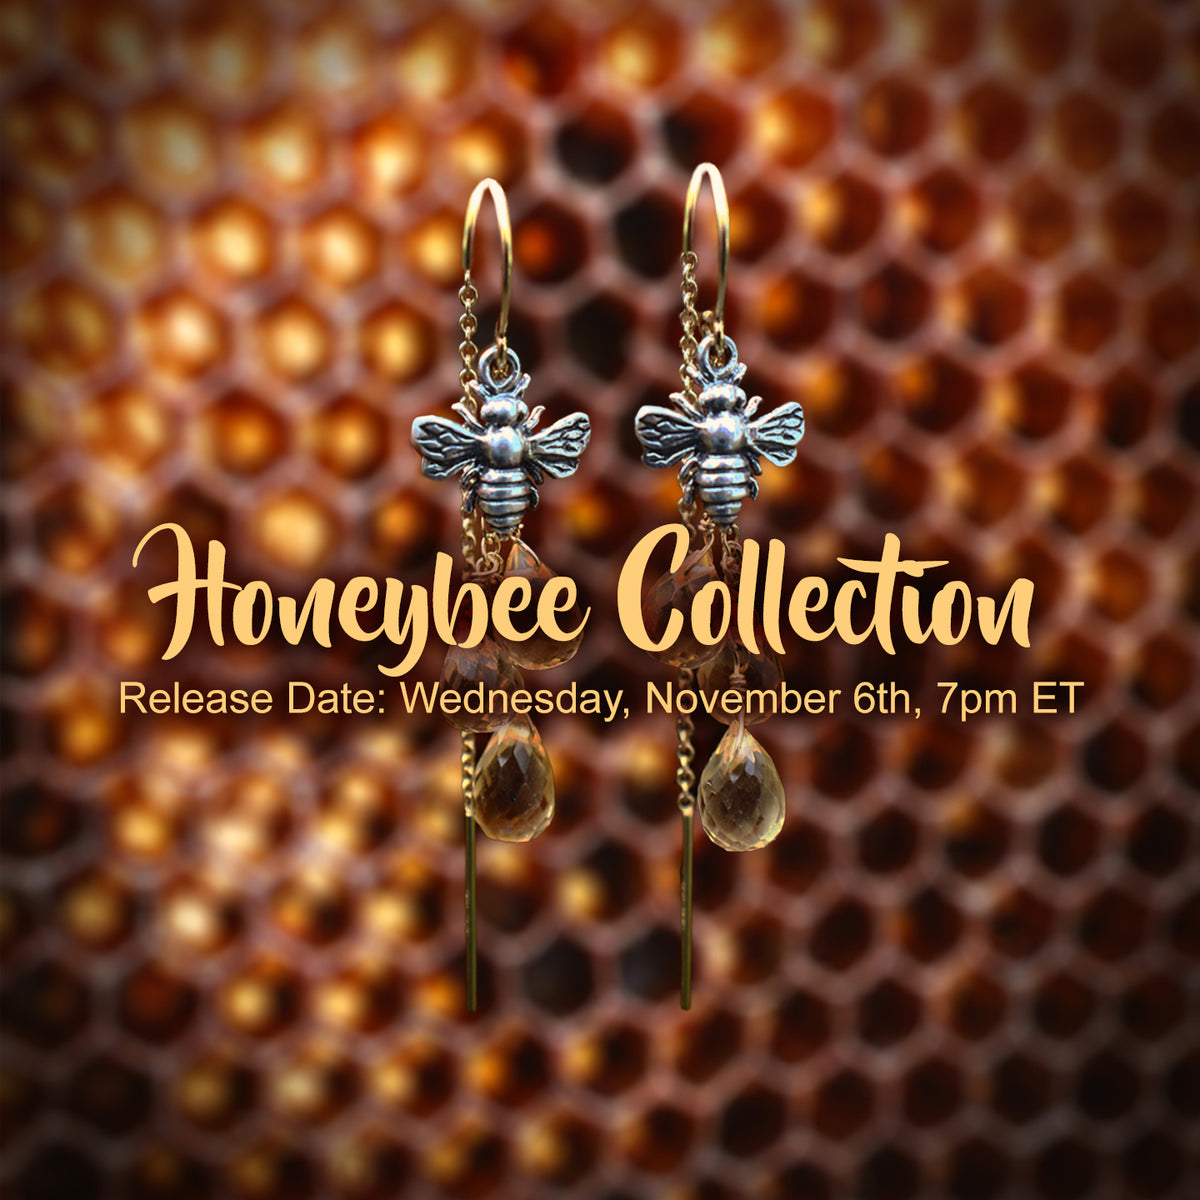 Honeybee Collection Pre-Release Info